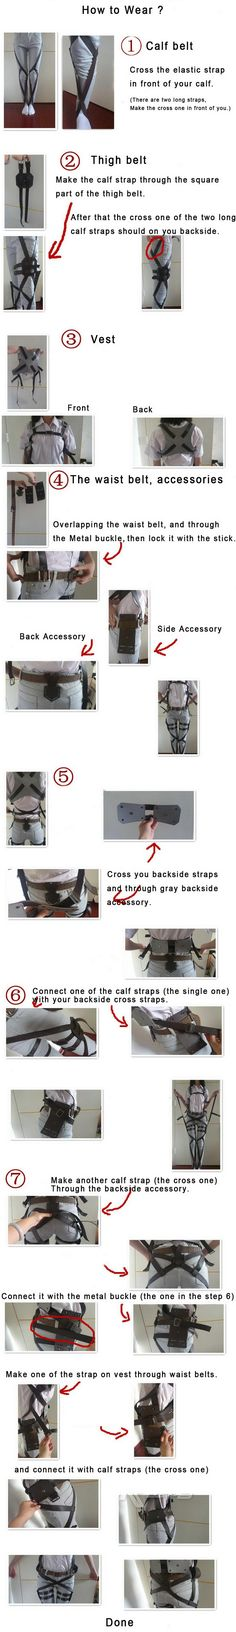 Attack on Titan Belt and Harness instructions.... I think I might Have to leave that out of my survey corp cosplay far to complex for me XD